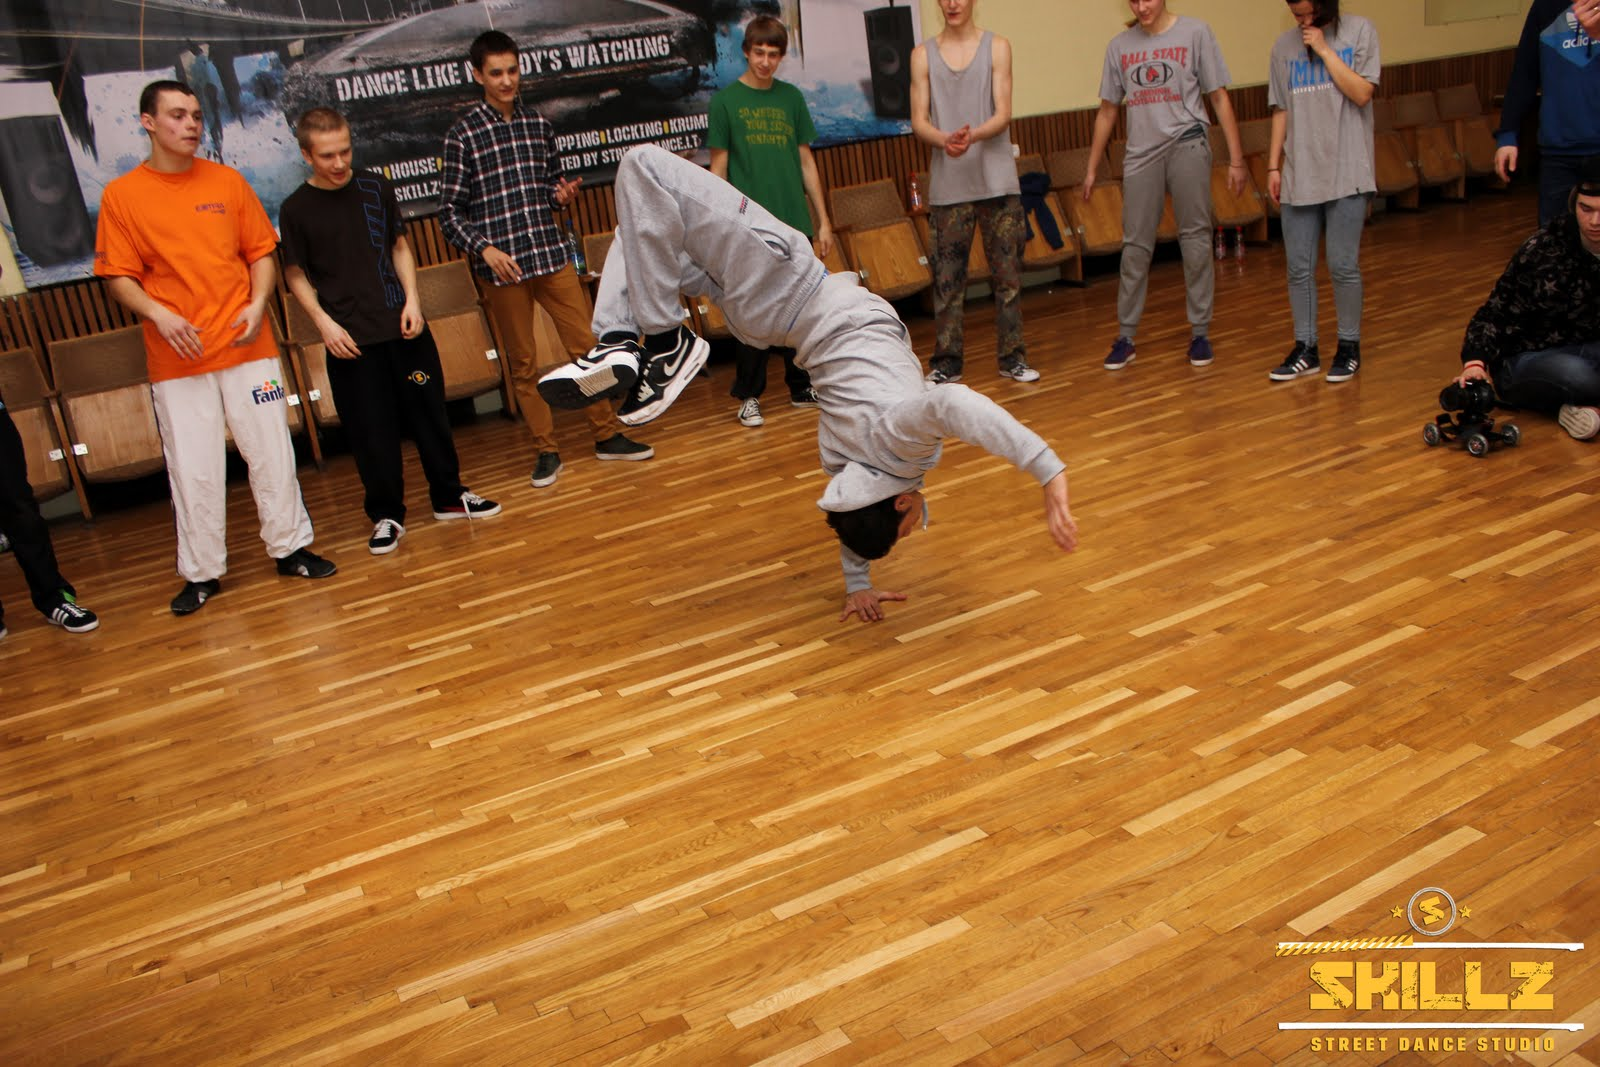 James (Olandija) Bboying workshop - IMG_2193.jpg